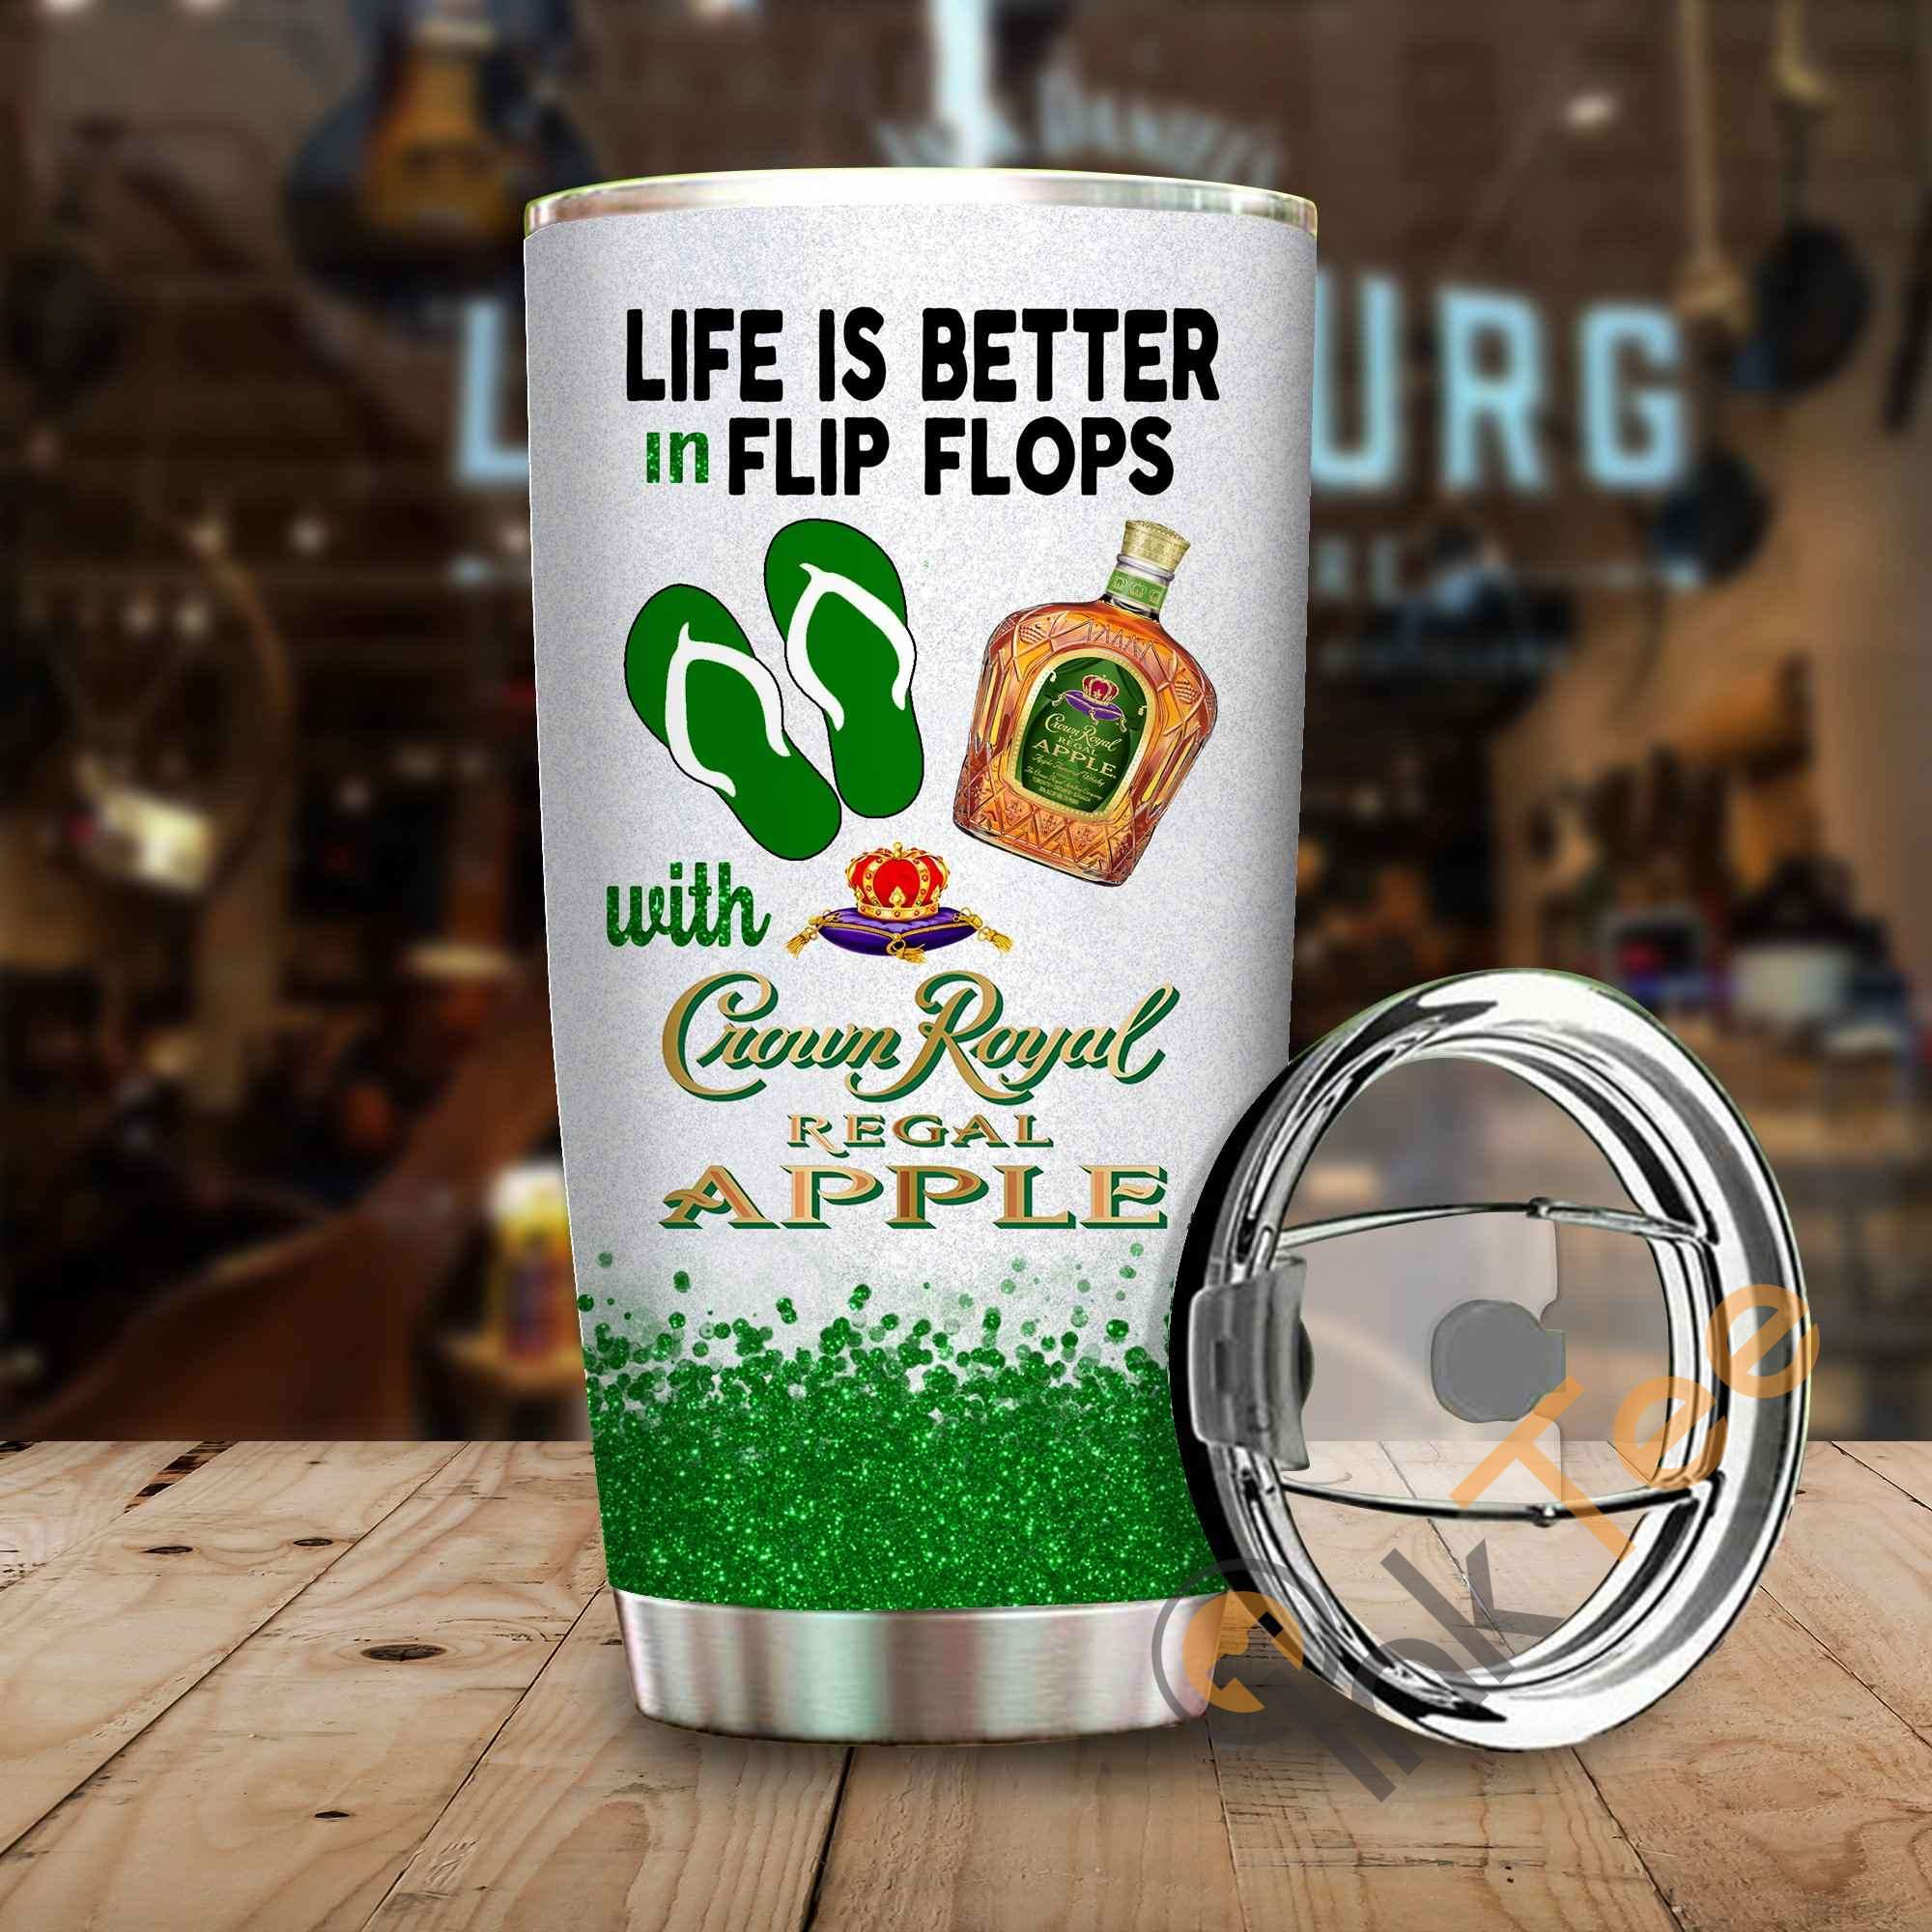 Life Is Better In Flip Flops With Crown Royal Regal Apple Amazon Best Seller Sku 3980 Stainless Steel Tumbler